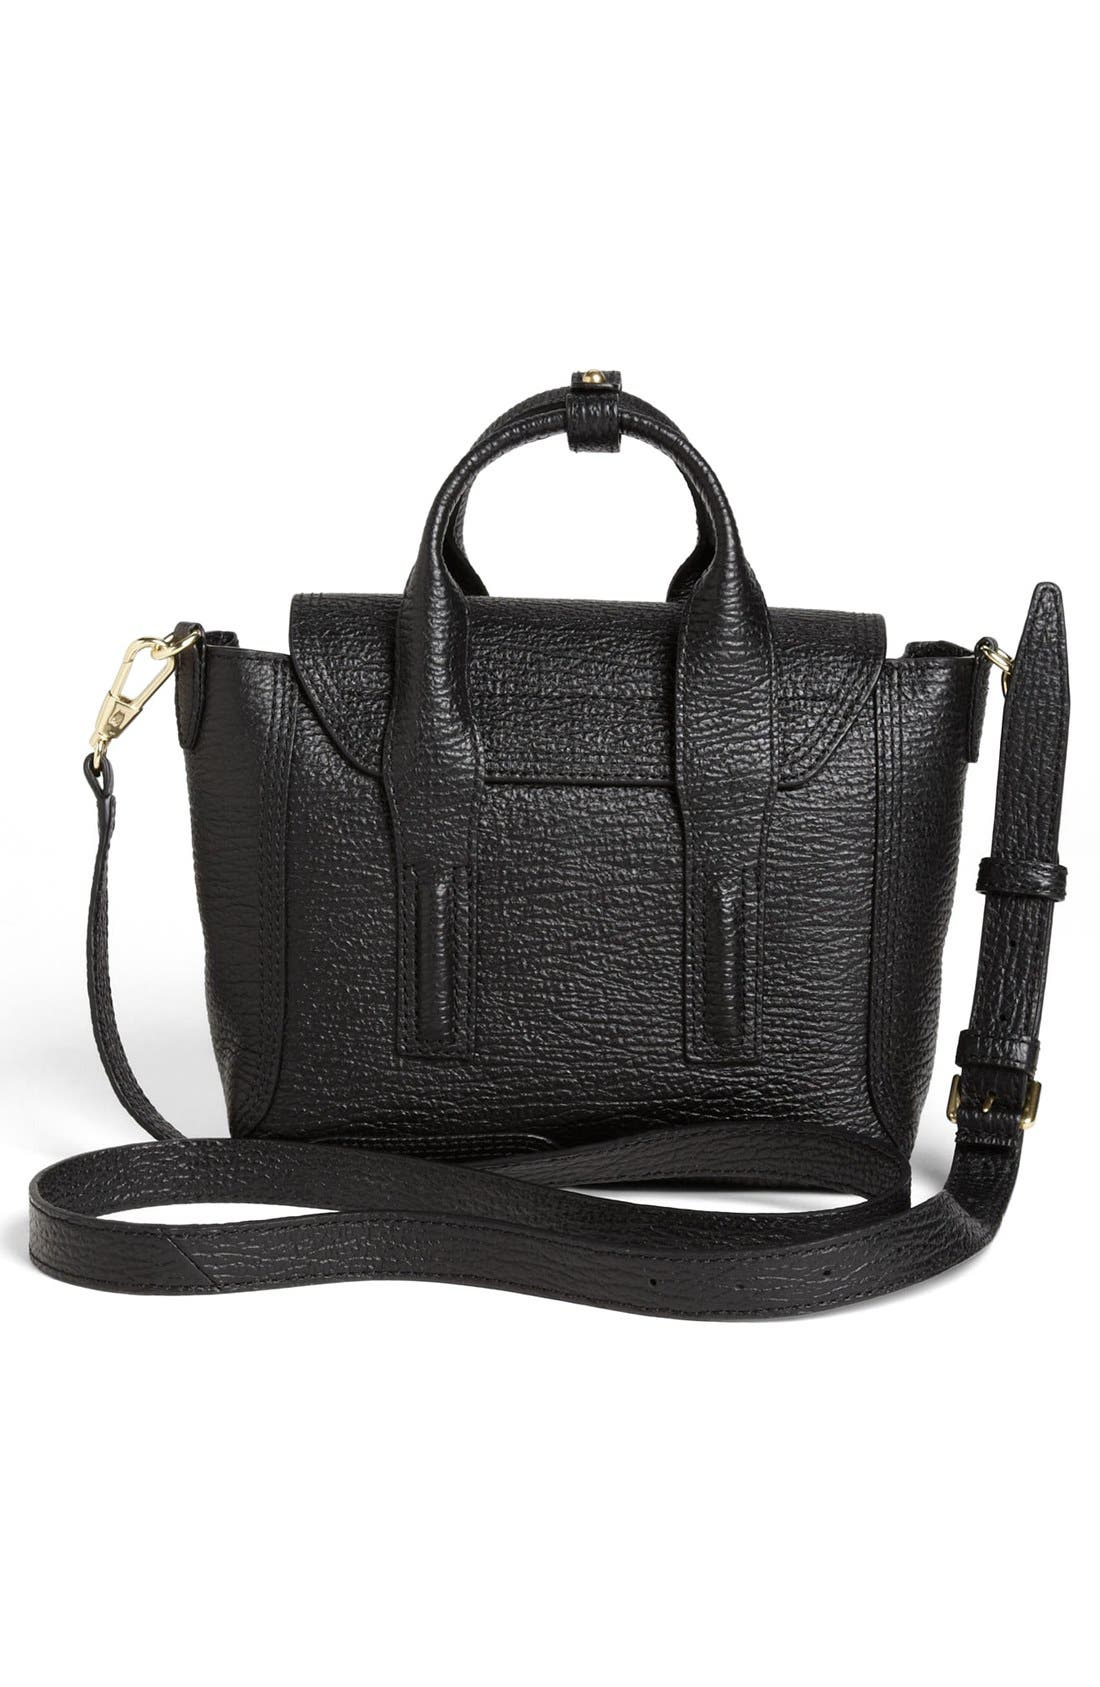 'Mini Pashli' Leather Satchel,                             Alternate thumbnail 3, color,                             BLACK/ GOLD HDWR